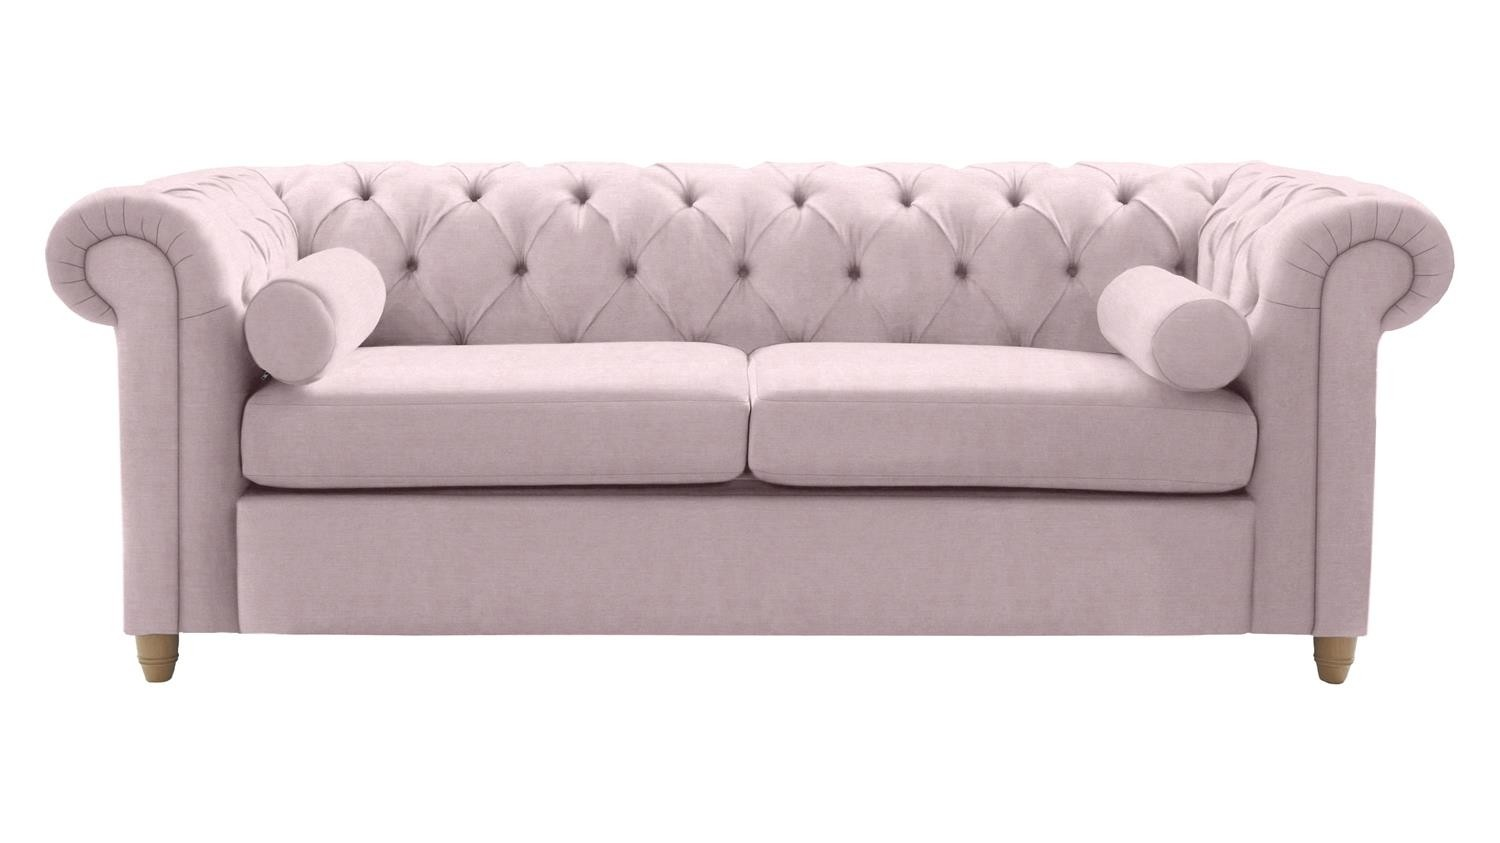 The Bulford 2 Seater Sofa Bed